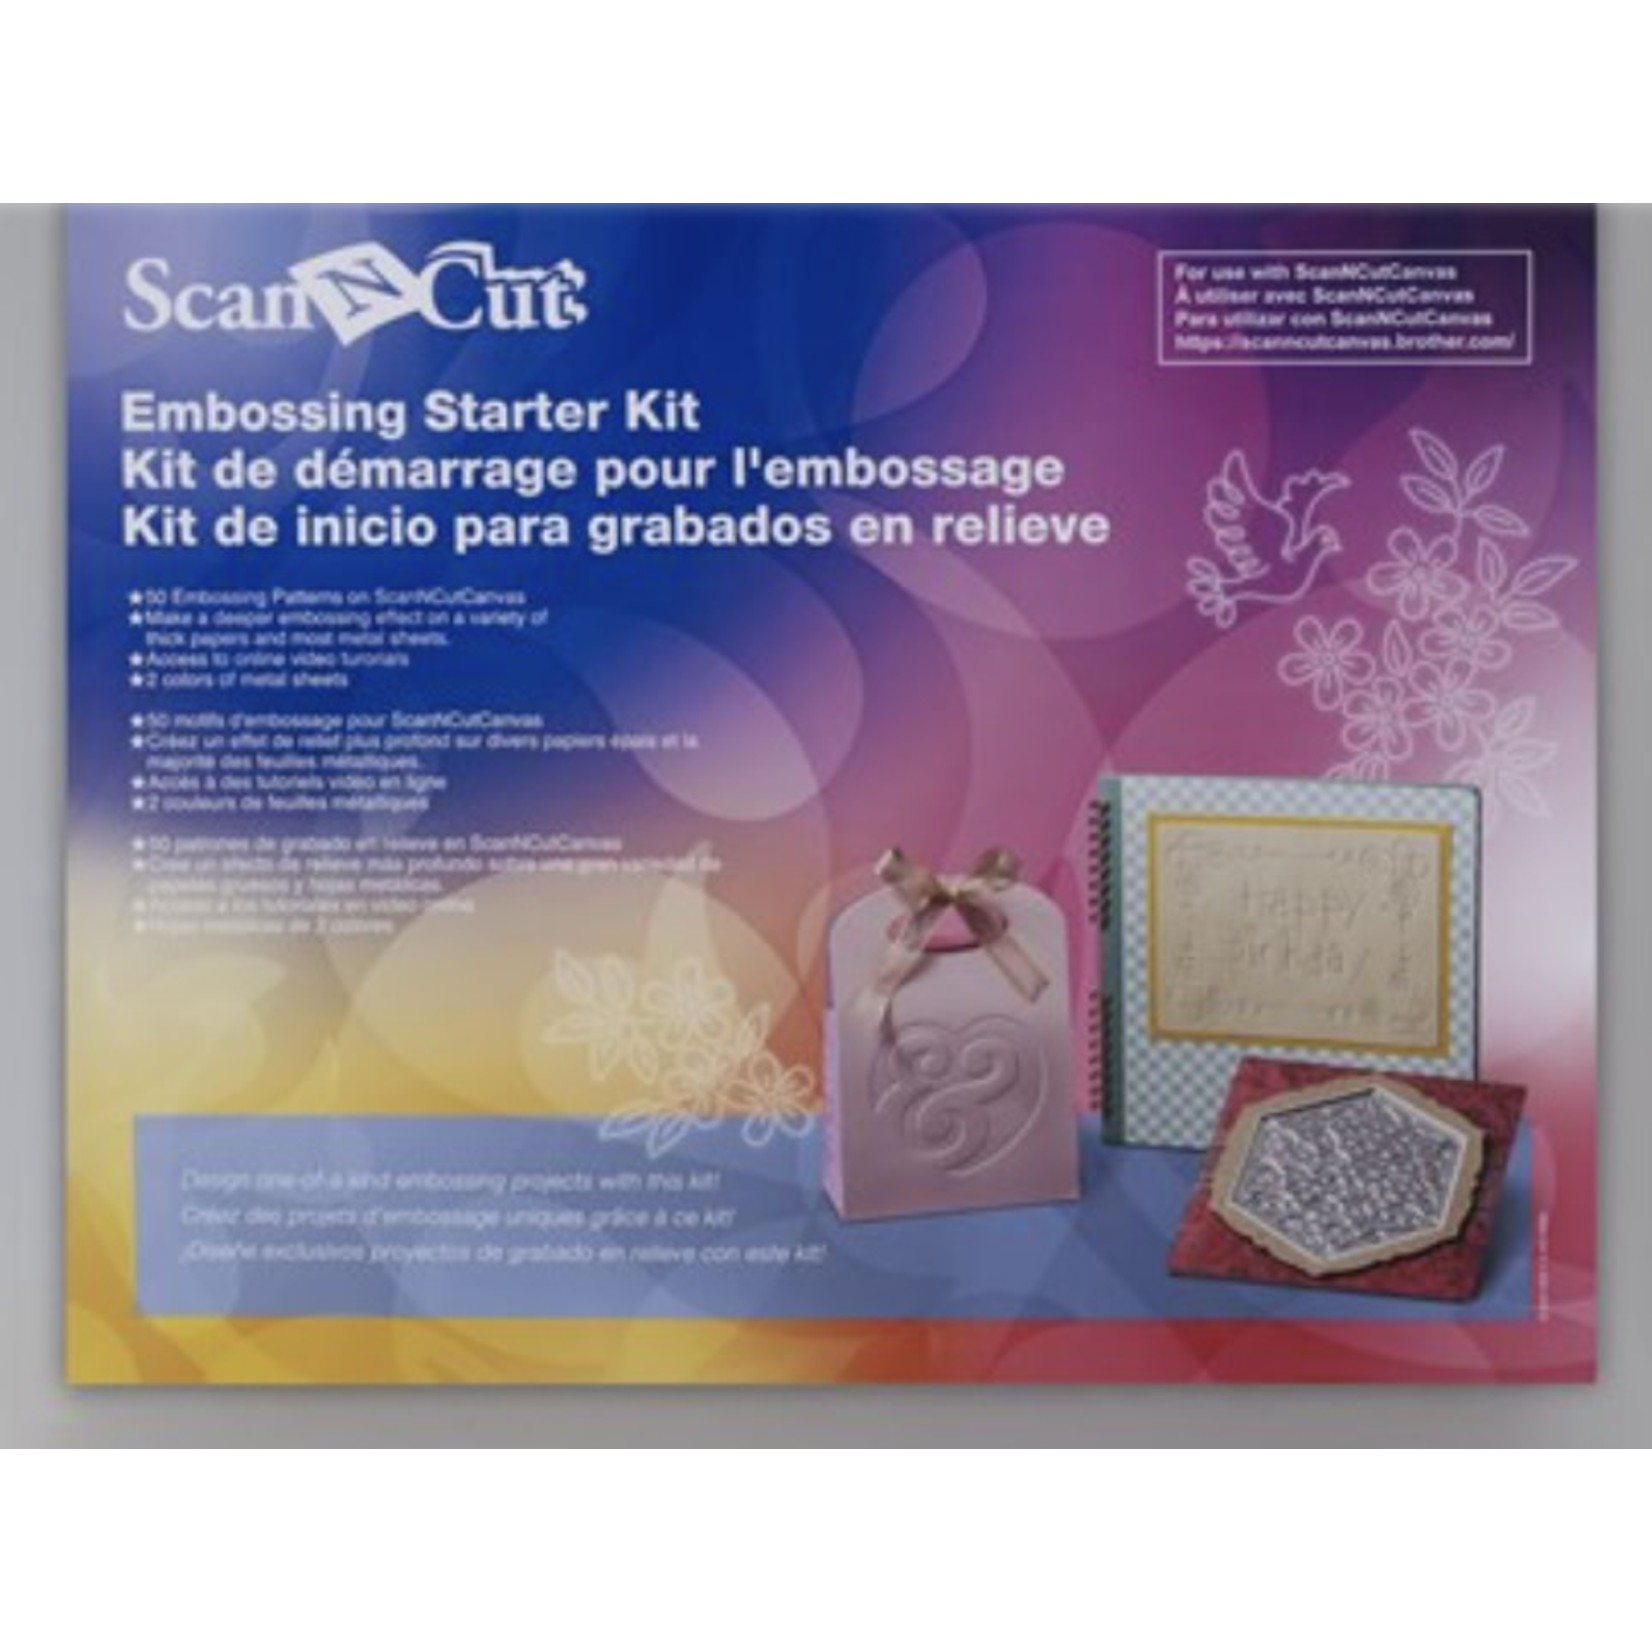 Brother BROTHER EMBOSSING STARTER KIT SCAN N CUT